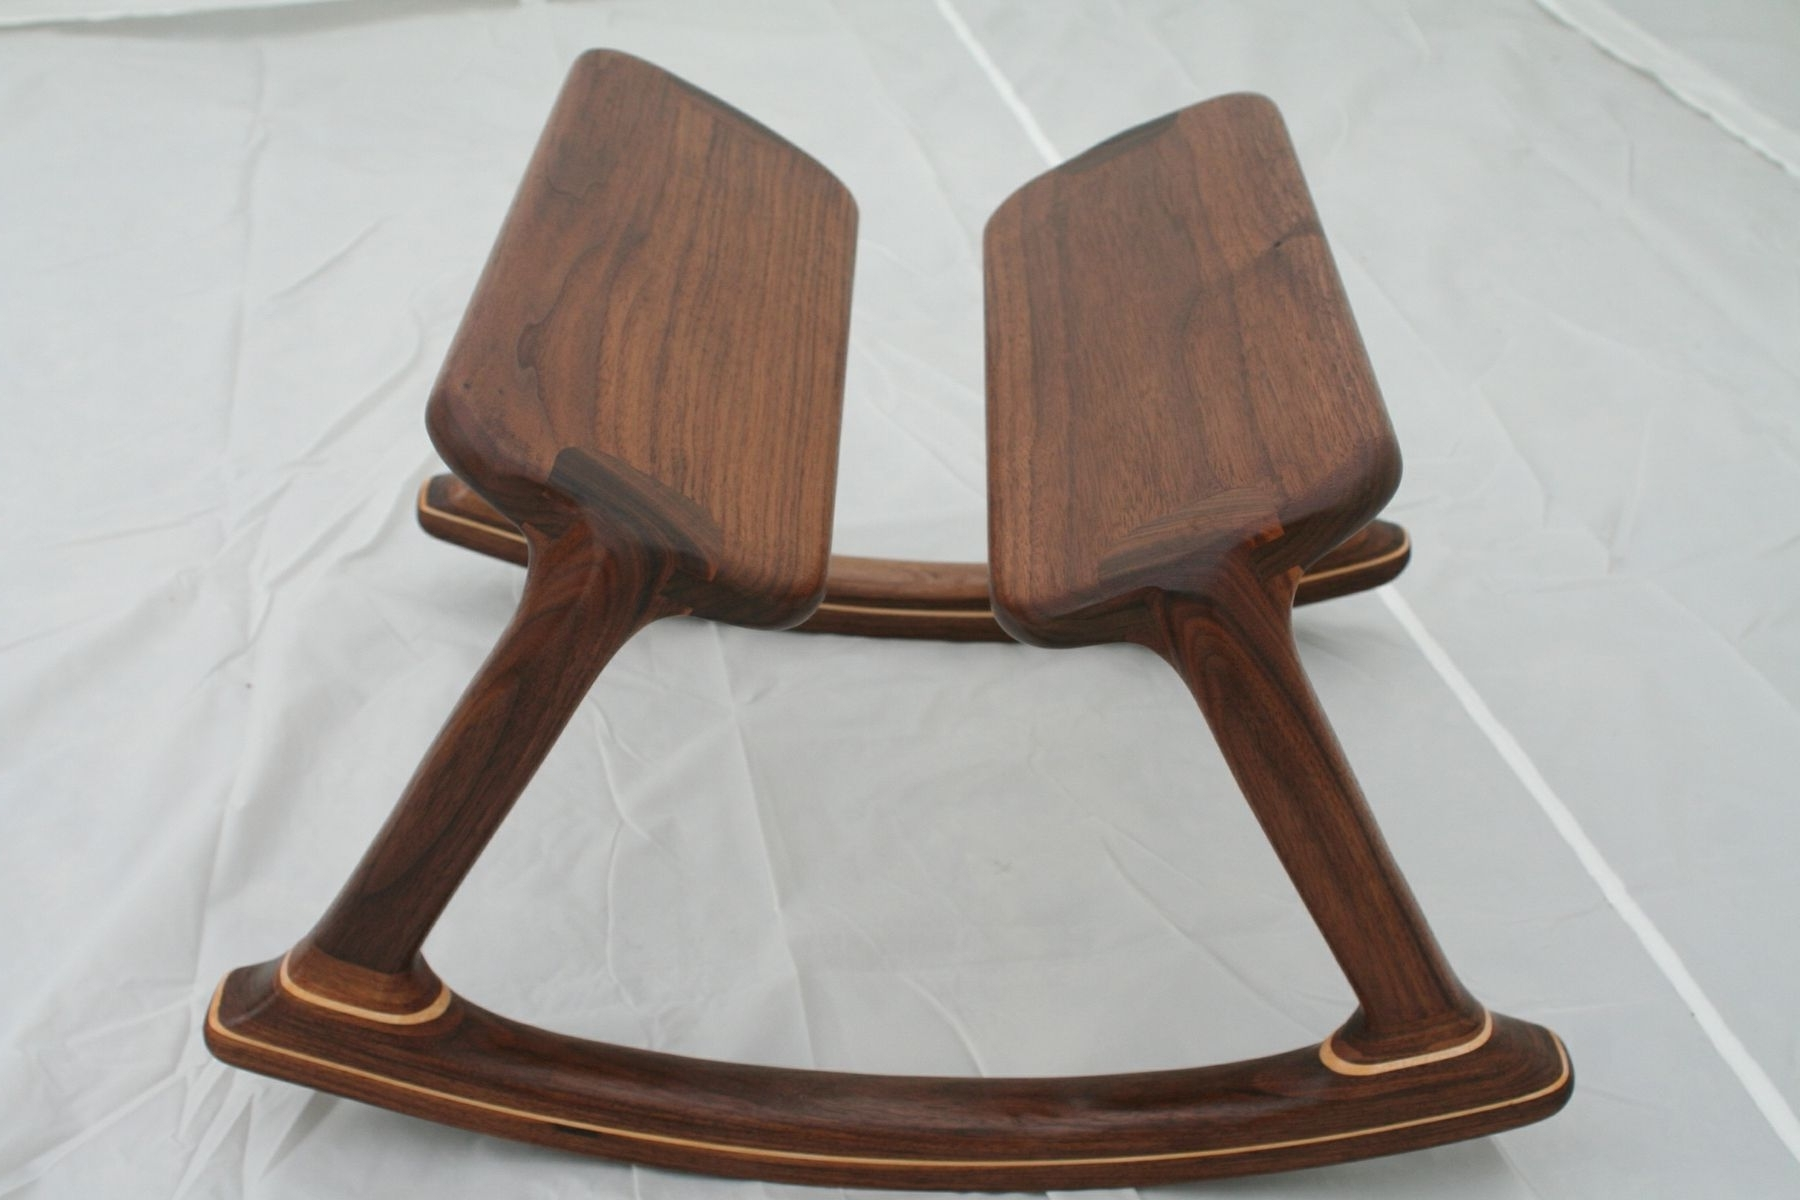 Rocking Chairs With Footstool Intended For Recent Custom Walnut Rocking Footstoolwood In Motion (View 14 of 20)